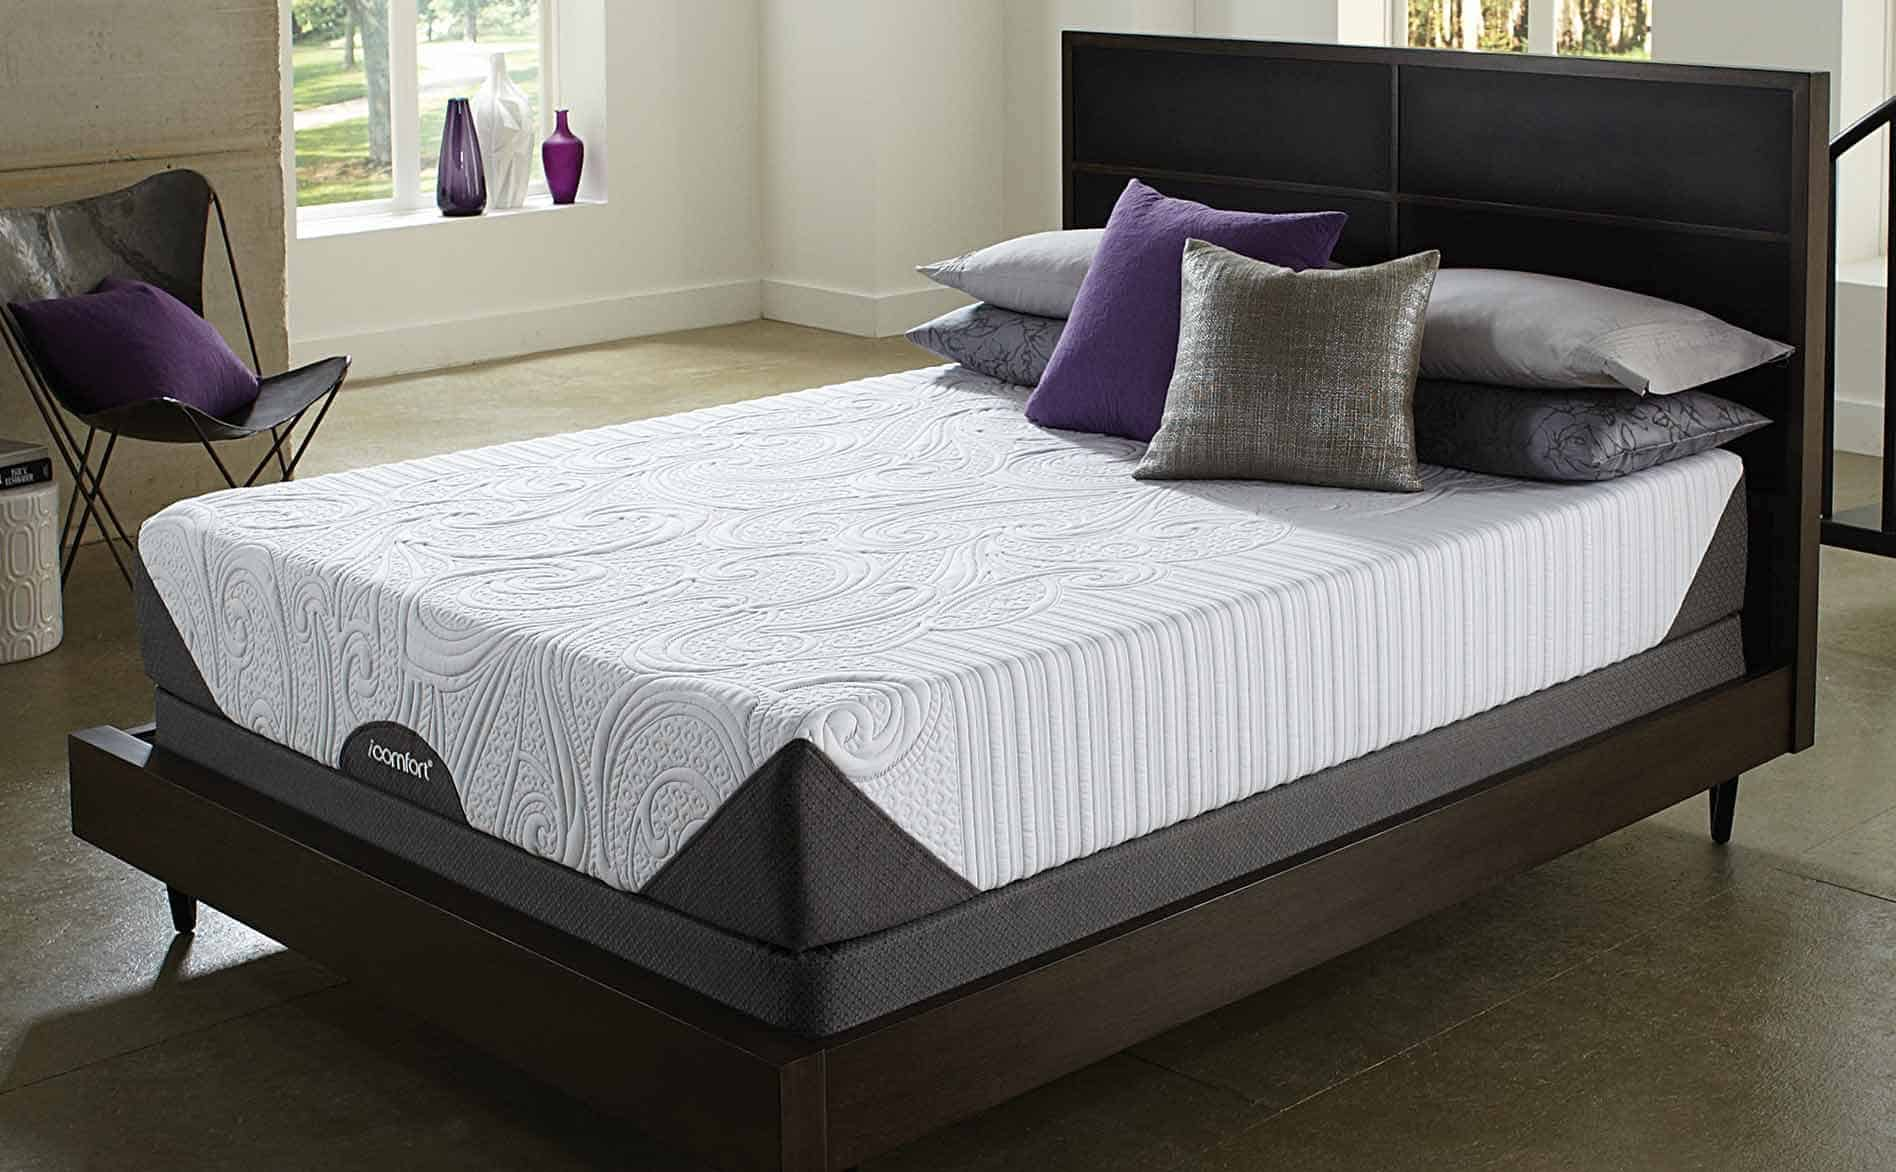 Icomfort Mattress Reviews The Best Mattress Reviews